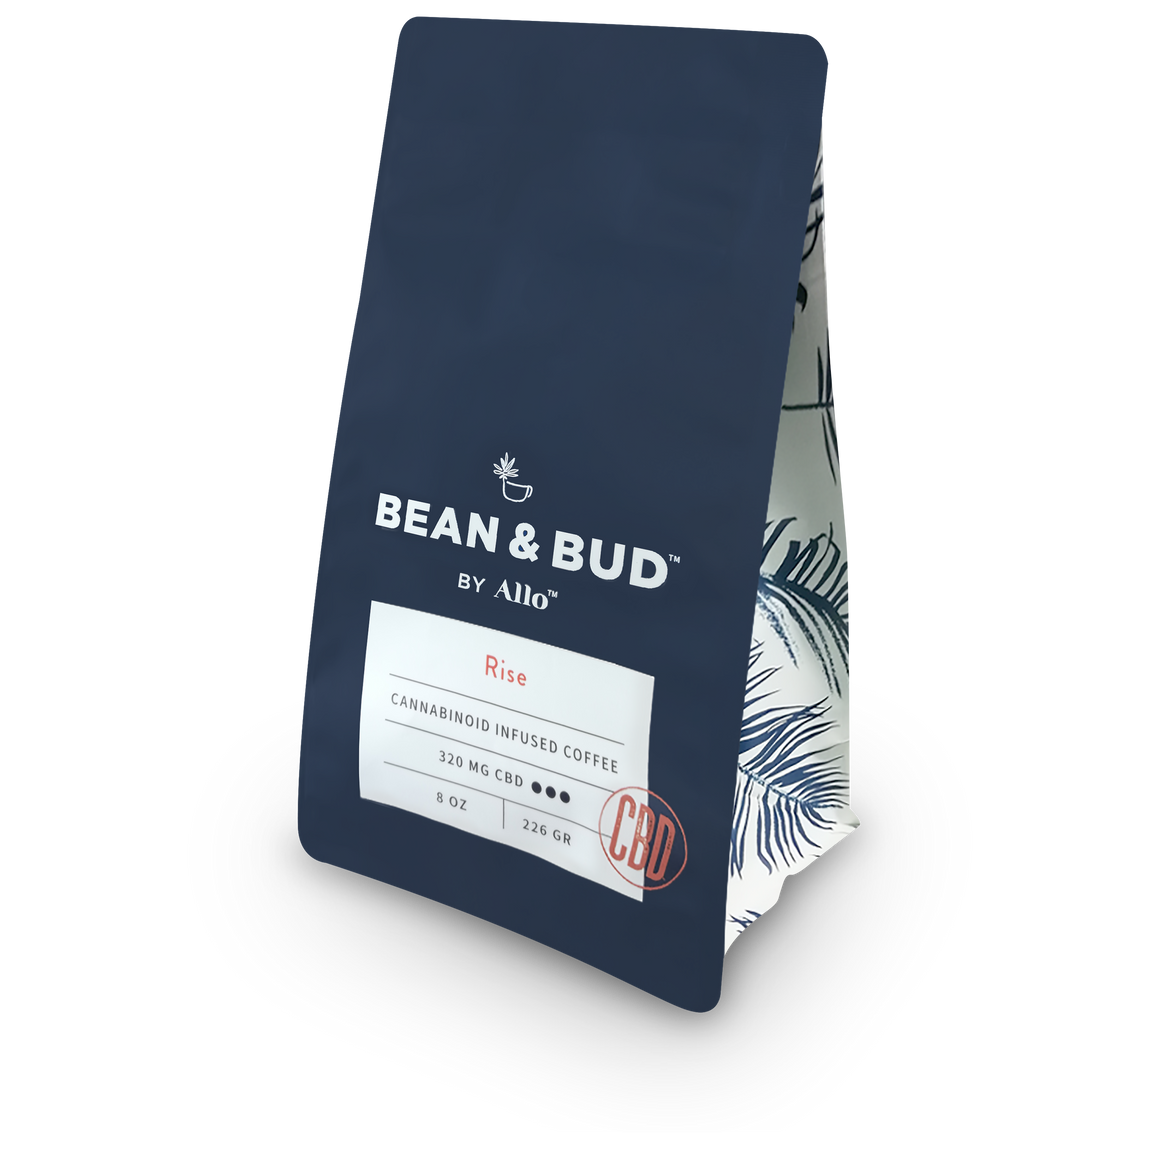 Bean and Bud CBD Coffee - Rise at Modest Hemp Co.